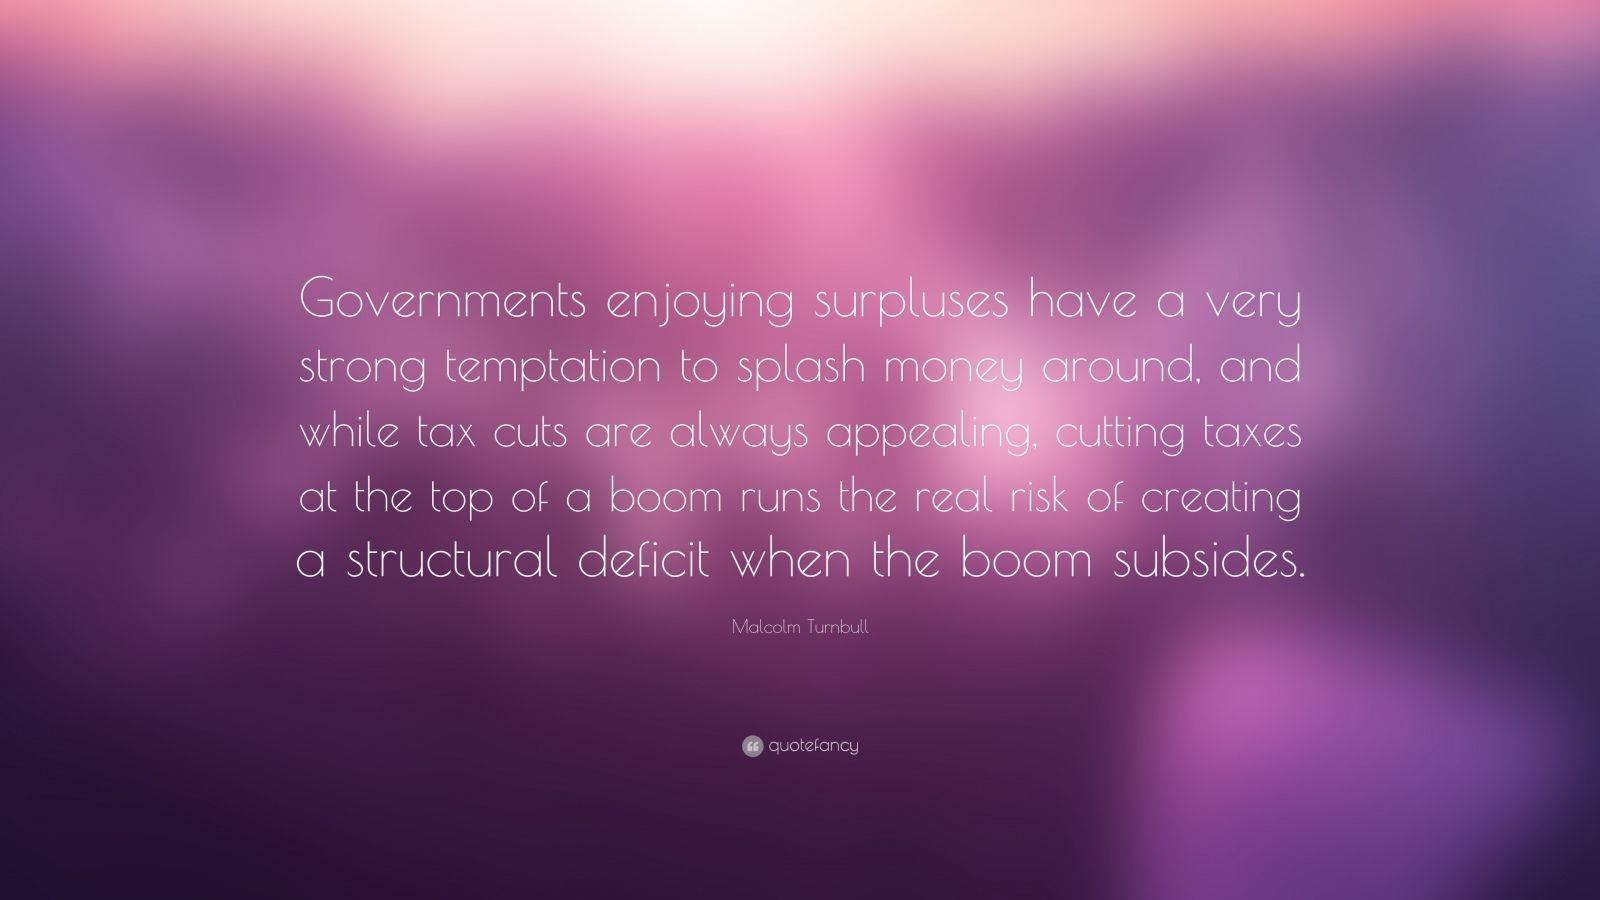 """Malcolm Turnbull Quote: """"Governments enjoying surpluses have a very strong temptation to splash money around, and while tax cuts are always appealing, cutting taxes at the top of a boom runs the real risk of creating a structural deficit when the boom subsides."""""""